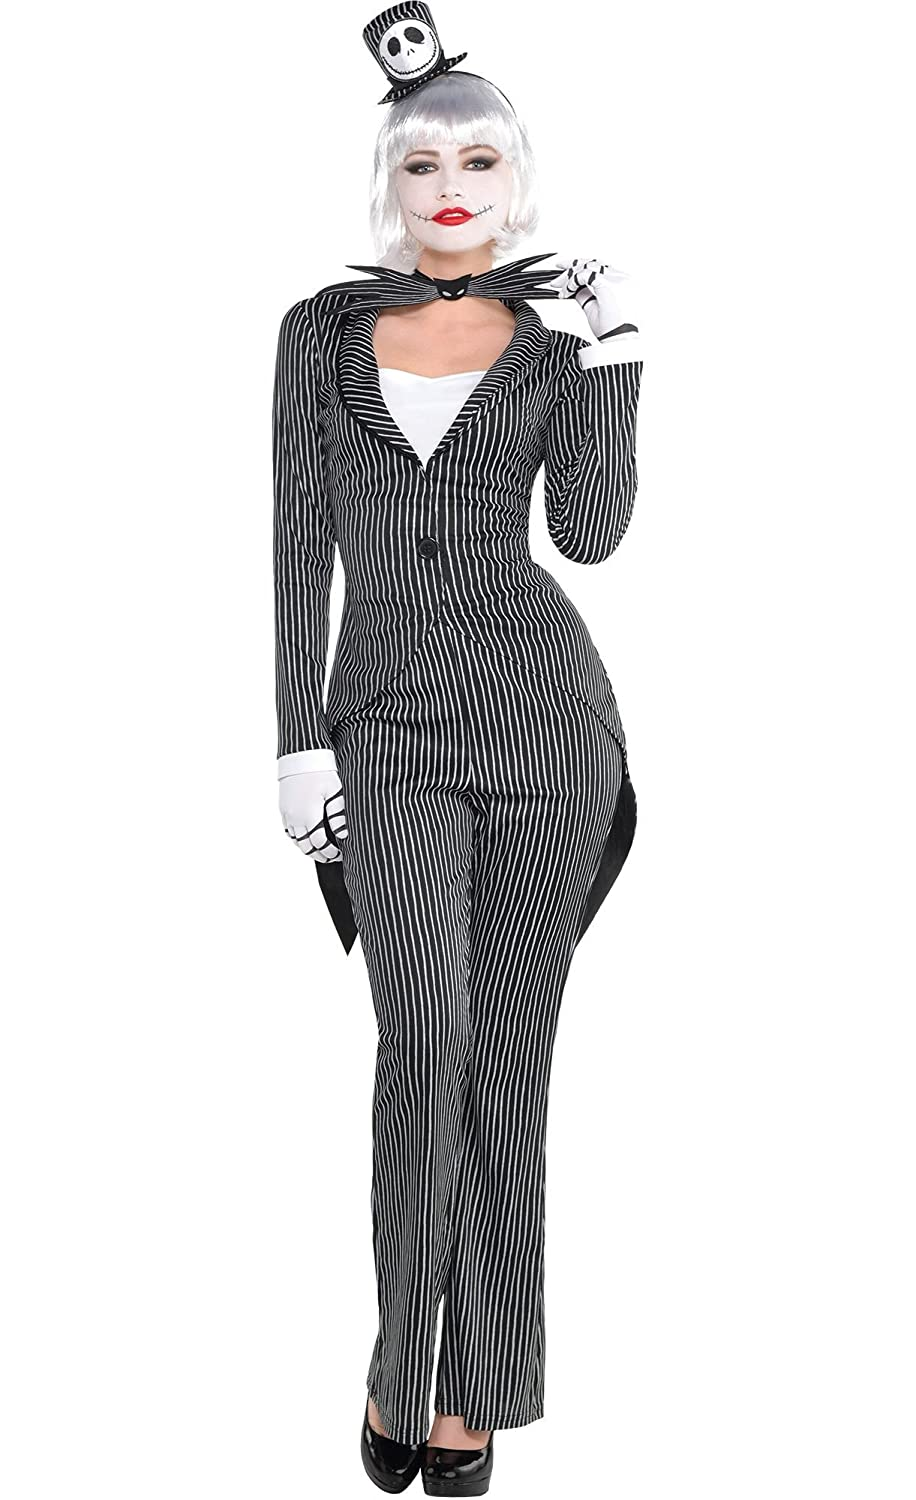 Amazon.com: HalloCostume Adult Lady Jack Skellington Costume - The ...